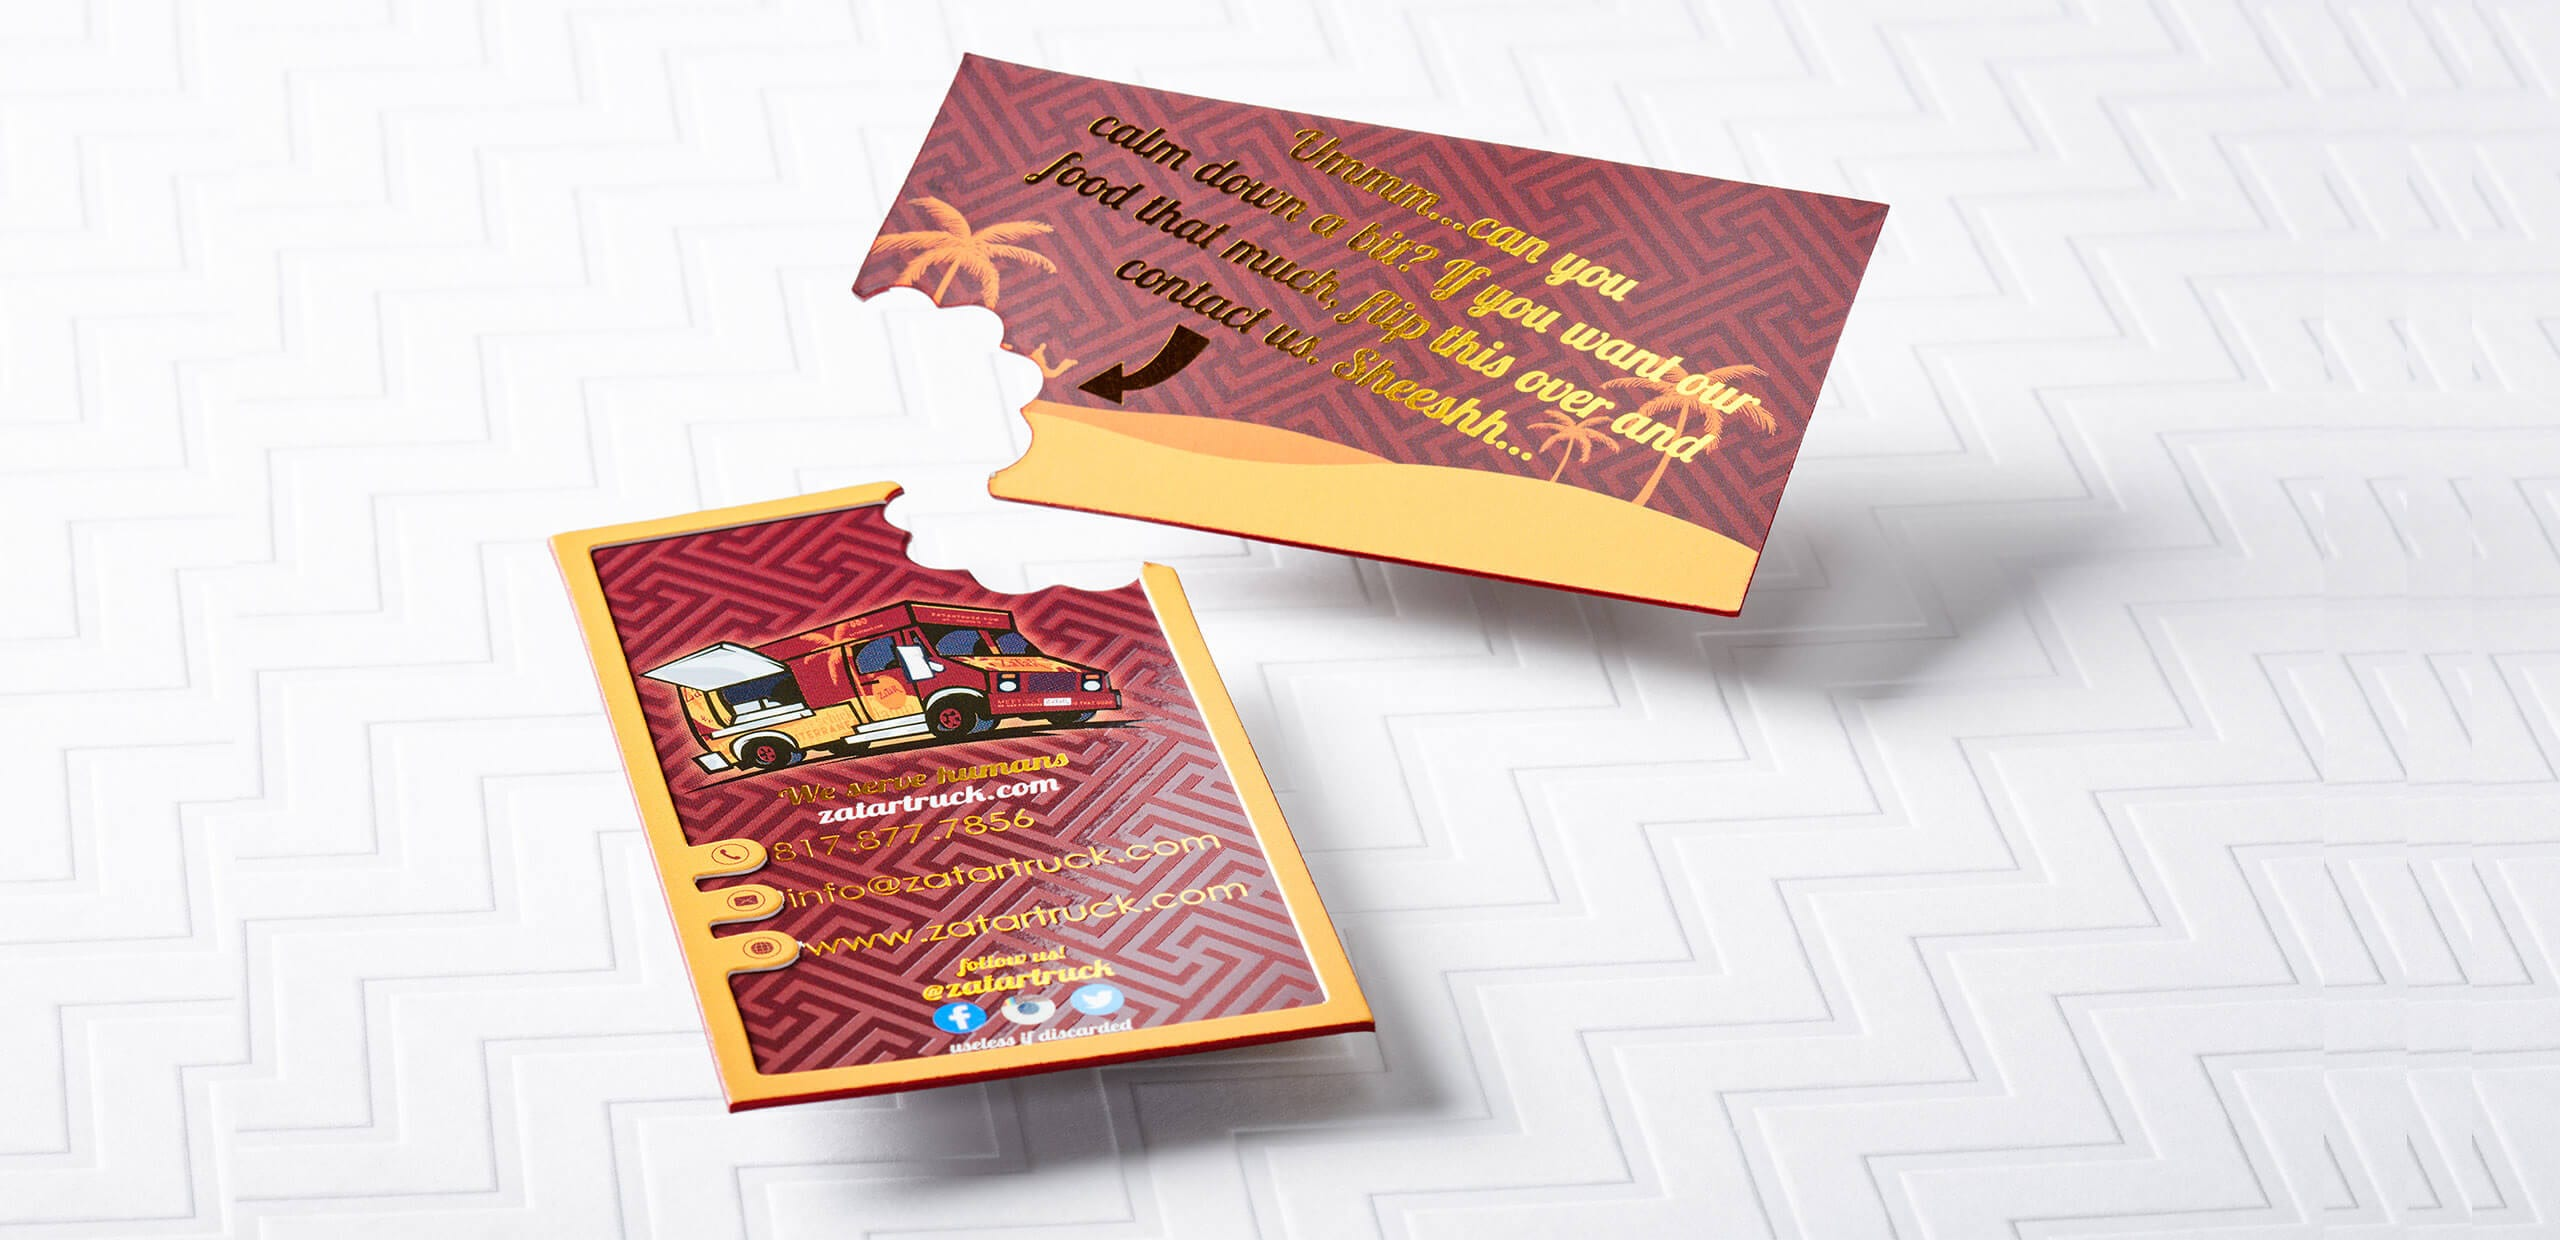 We provide Custom Die Cutting Services